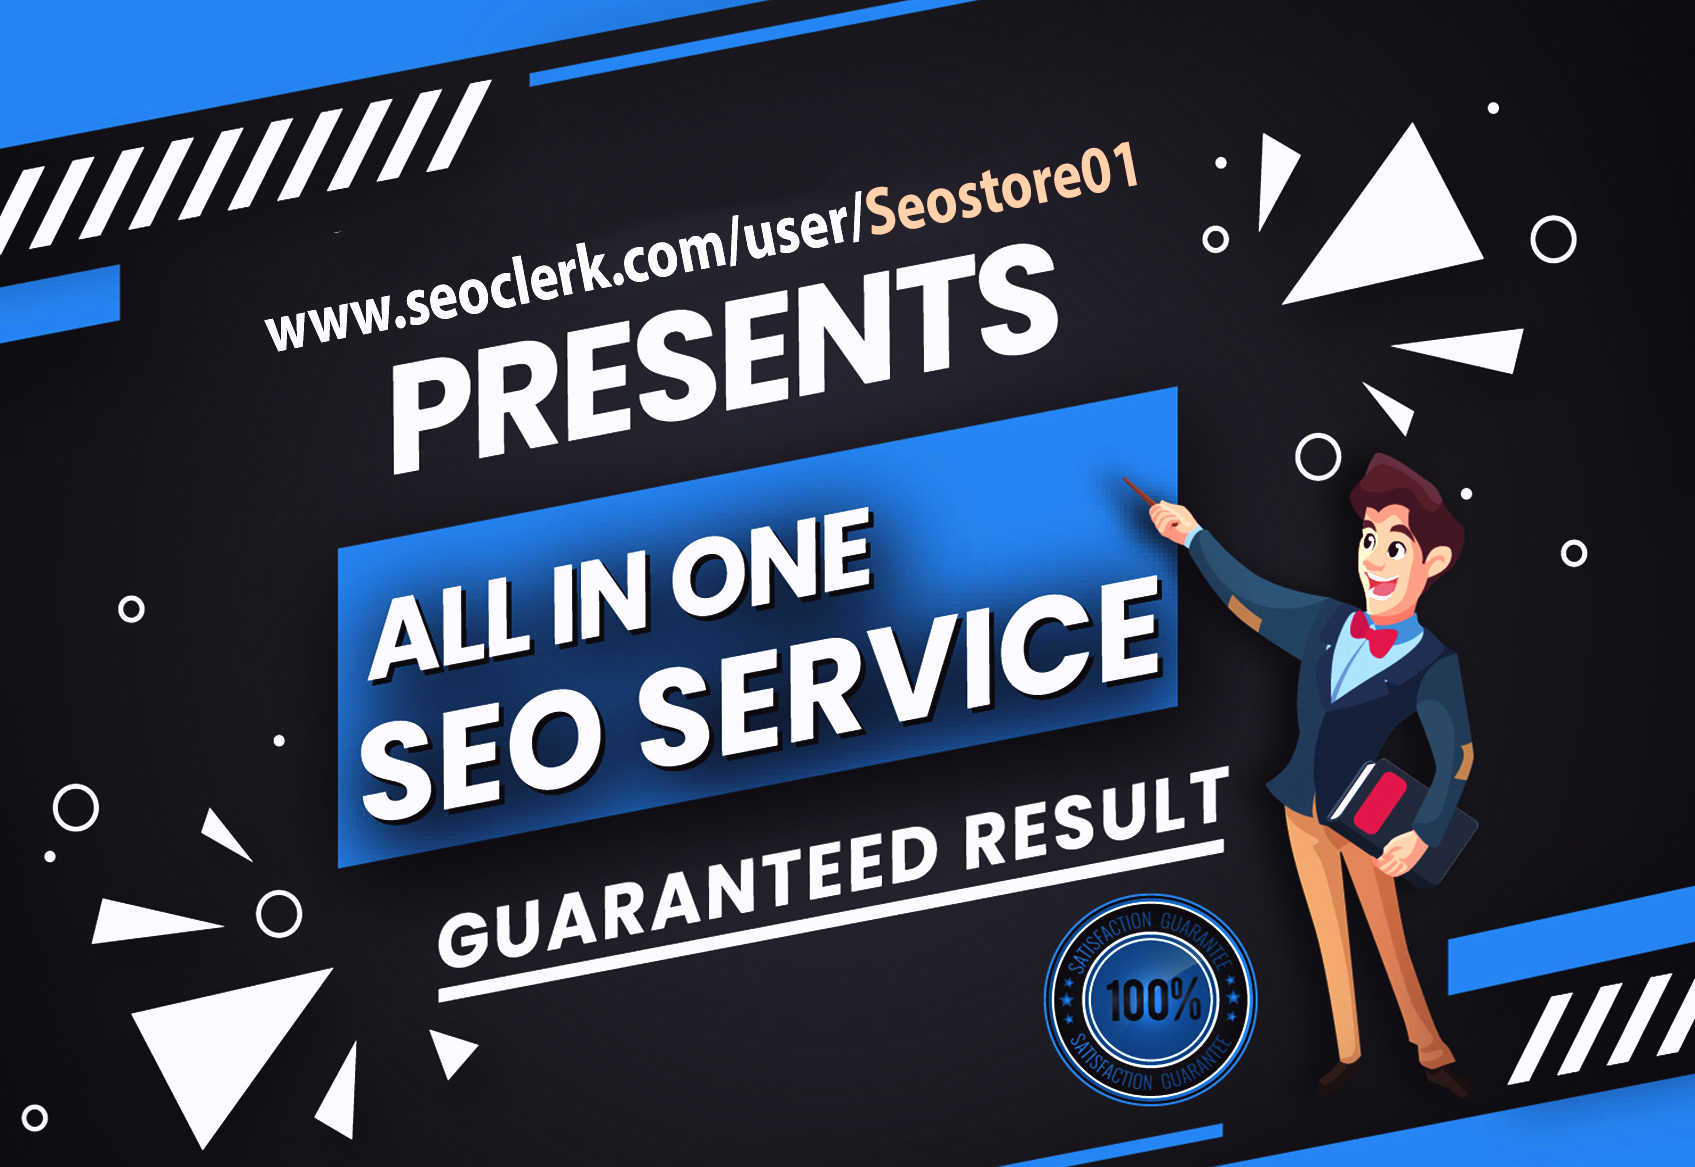 Bump Your Site On 1st Page Of Google With Our All in One SEO Strategy-Guaranteed